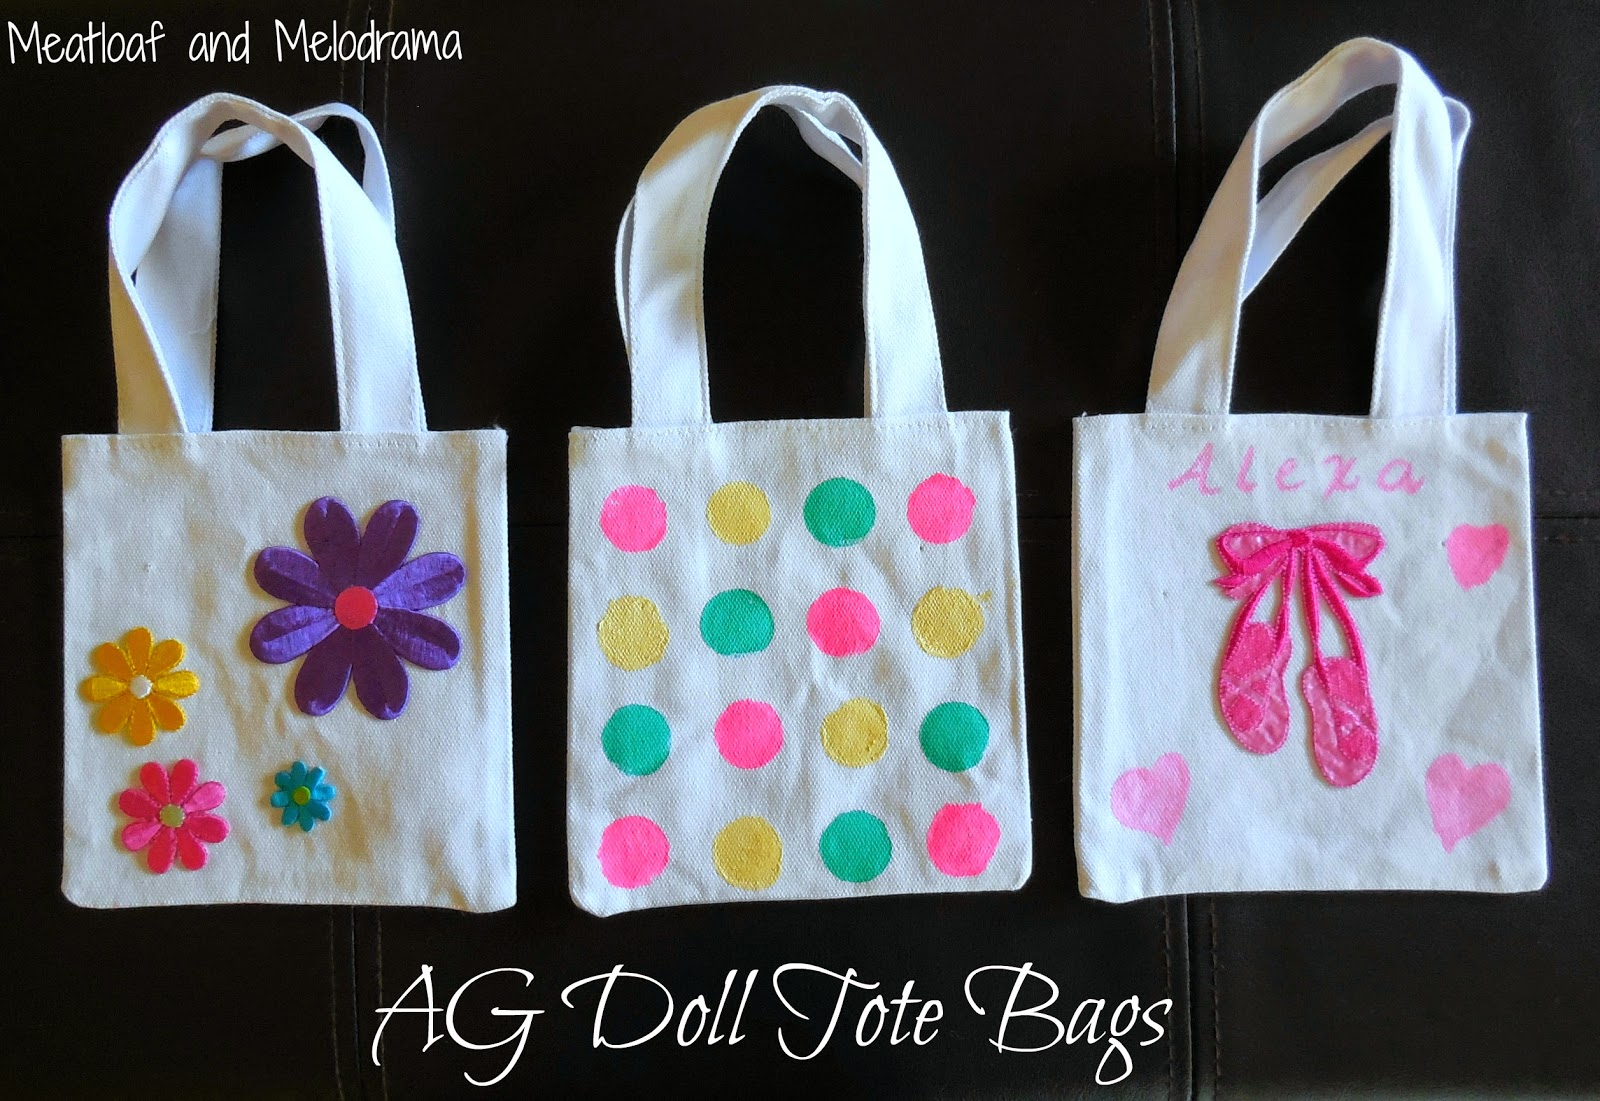 decorated tote bags for 18-inch dolls